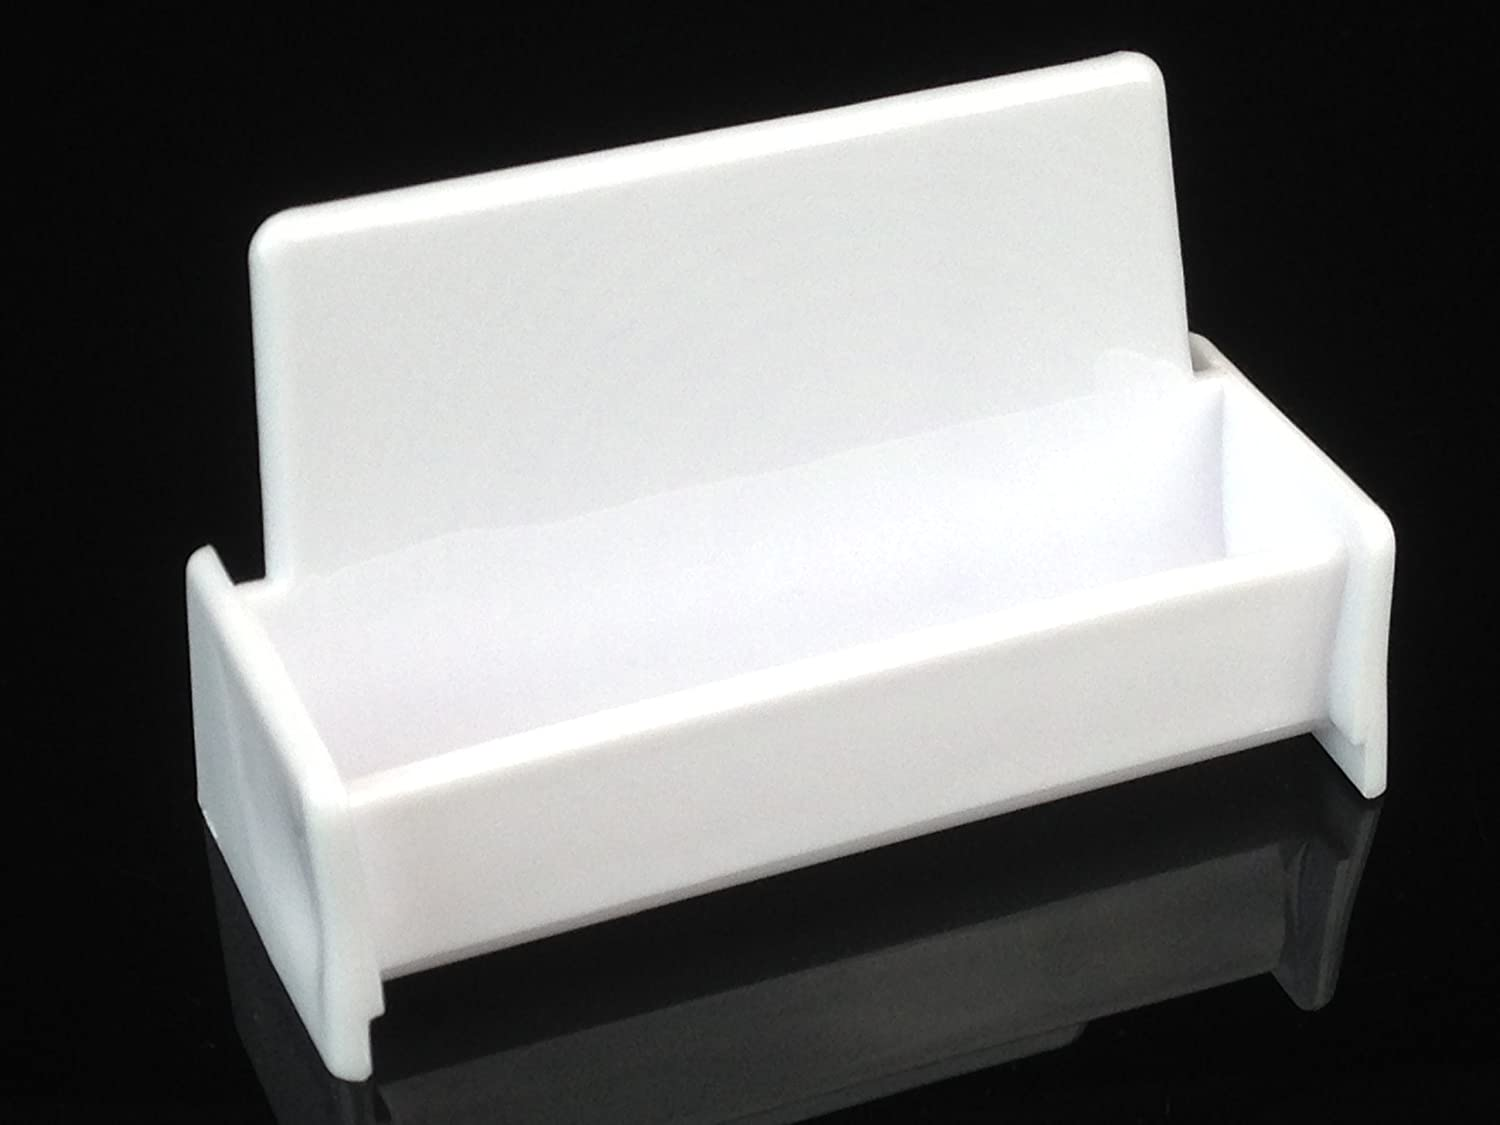 Amazon.com : Business Card Holder Display Stand Desk (Quantity: 1 ...